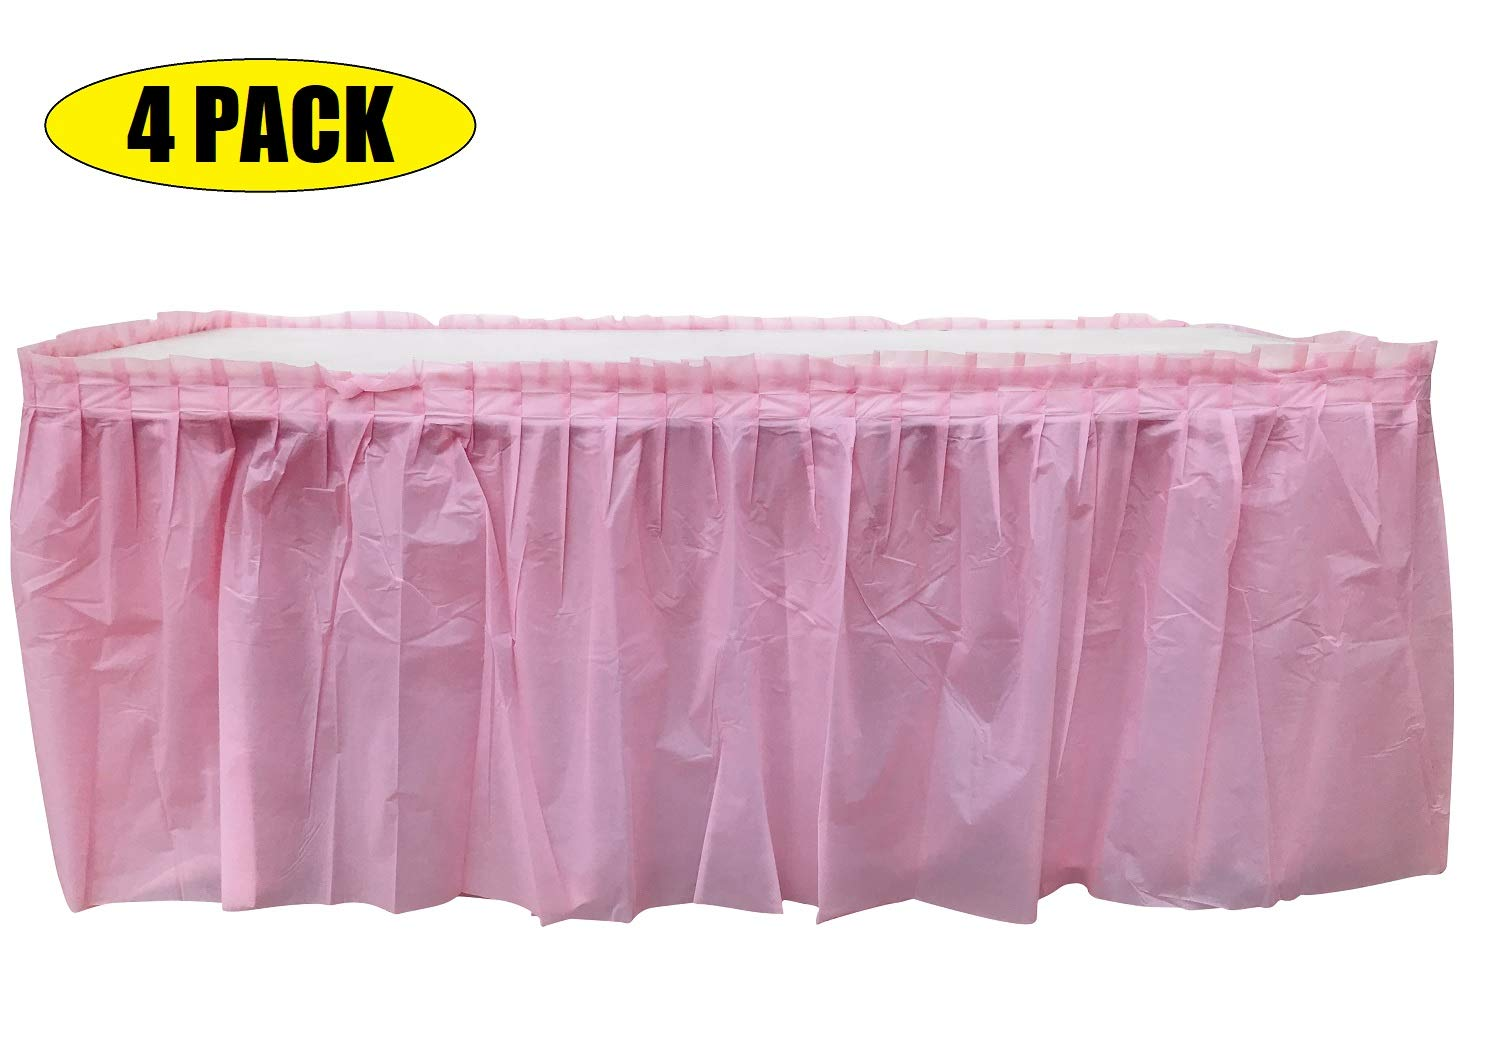 4 Pack Light Pink Table Skirt Carnival, Circus, Birthday, office, party Decorations, Baby Shower, Gender Reveal by Oojami